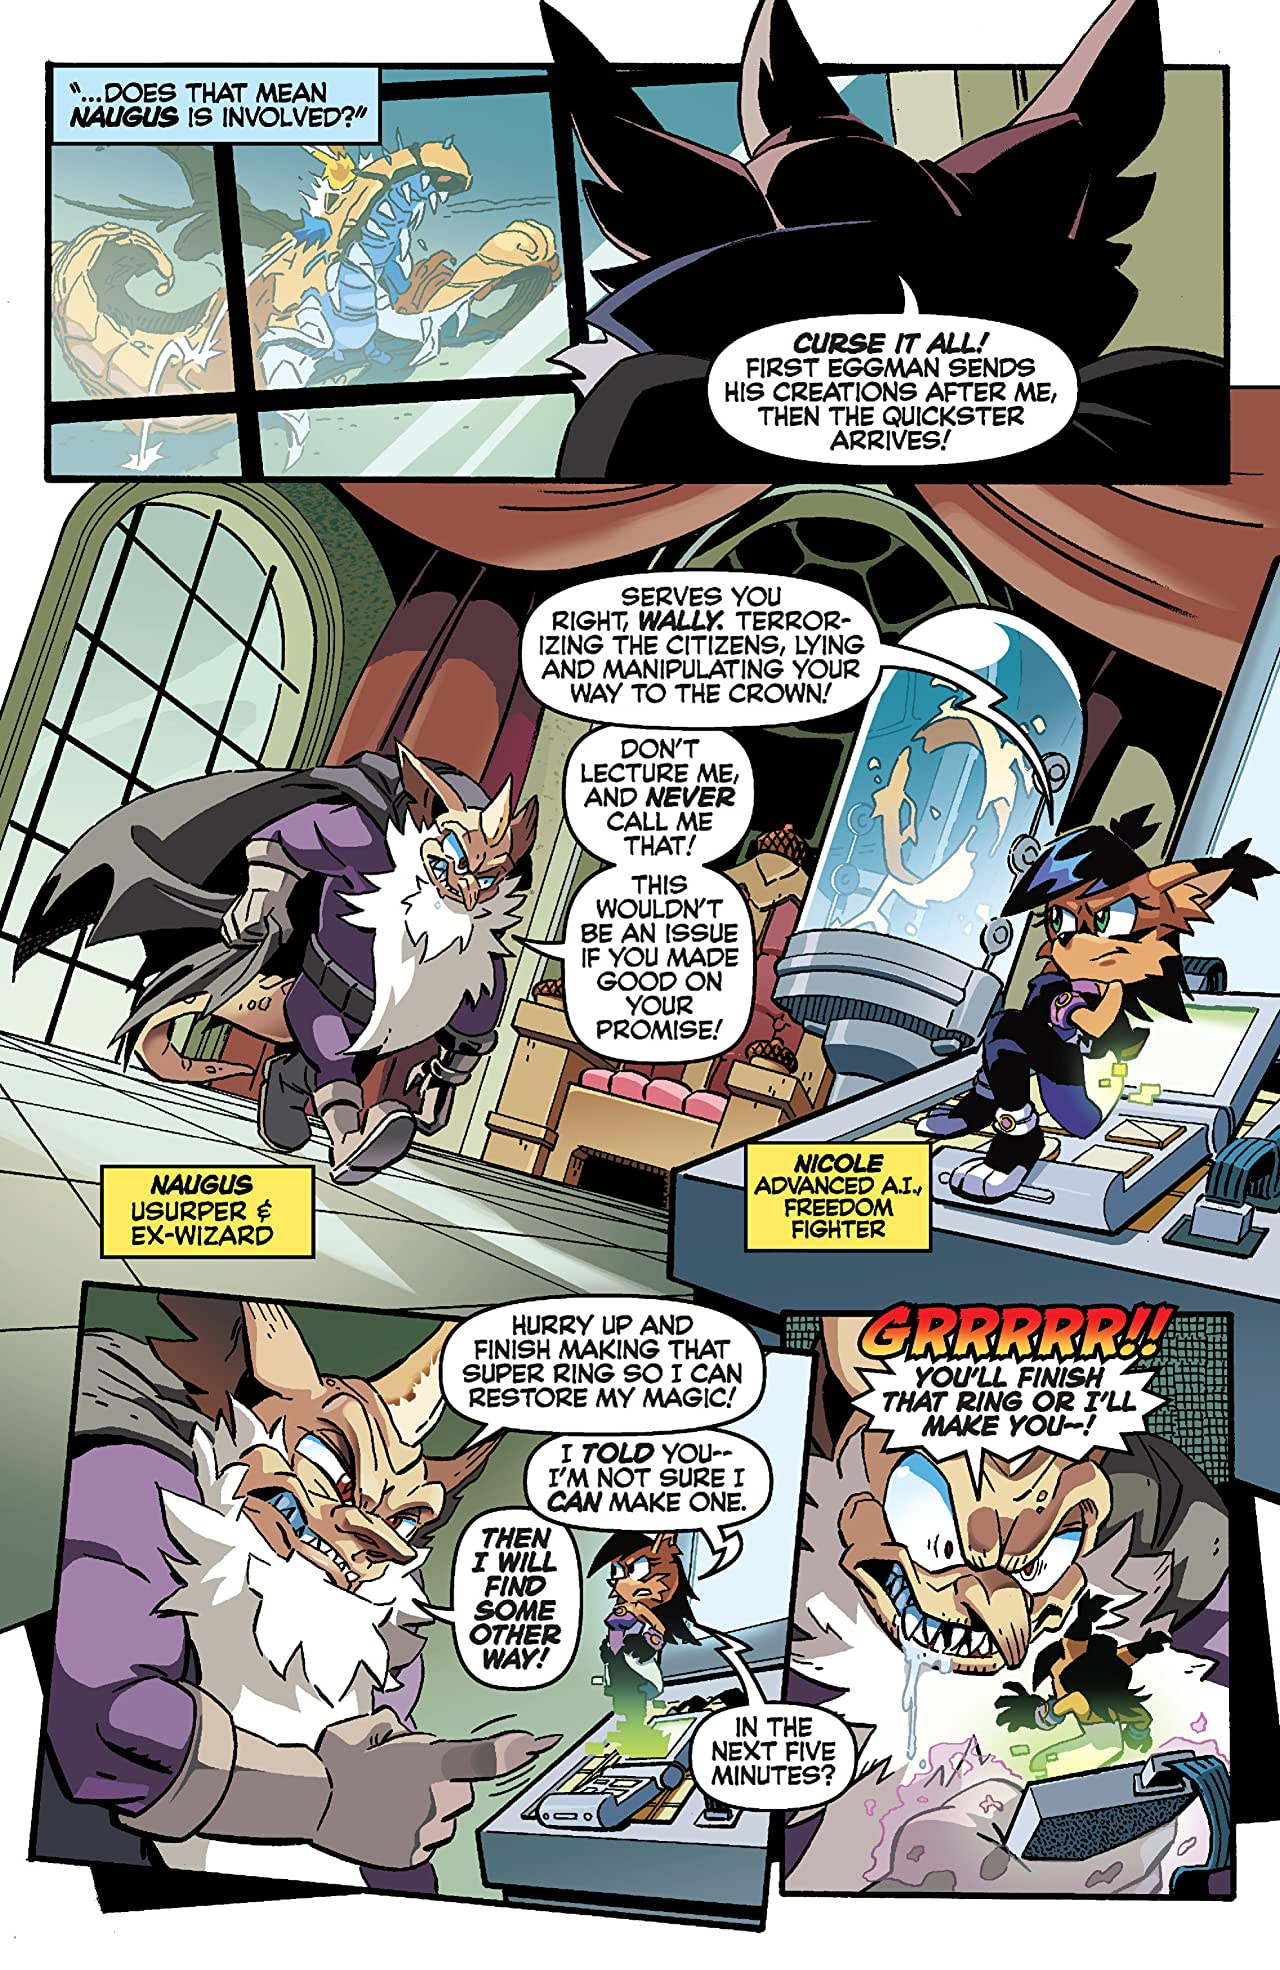 Sonic the Hedgehog #252